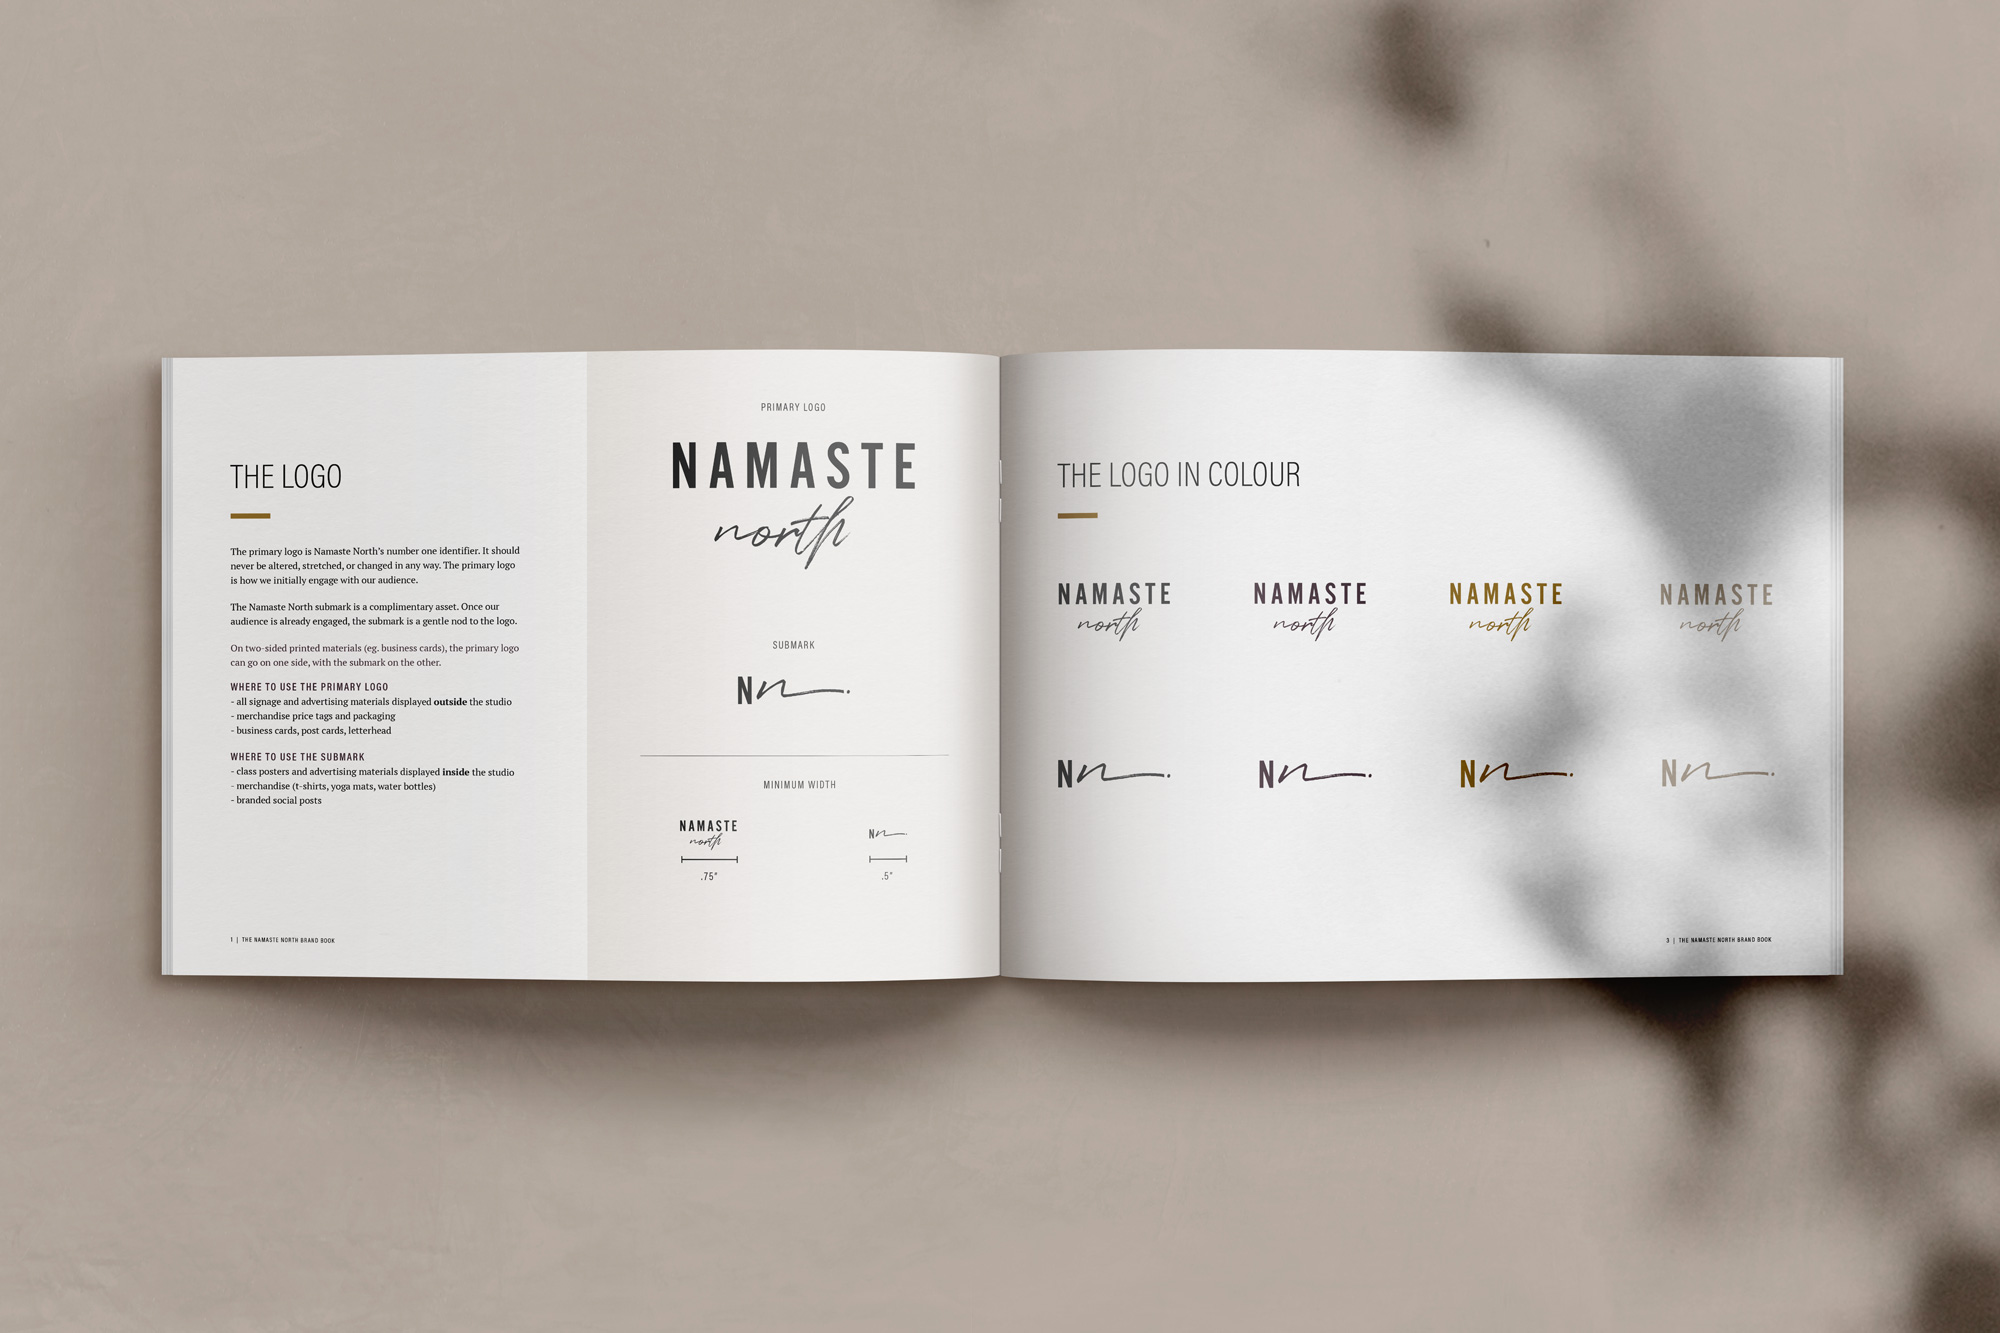 Namaste North branding, art direction, and photo direction by Jennifer Miranda and Flipside Creative